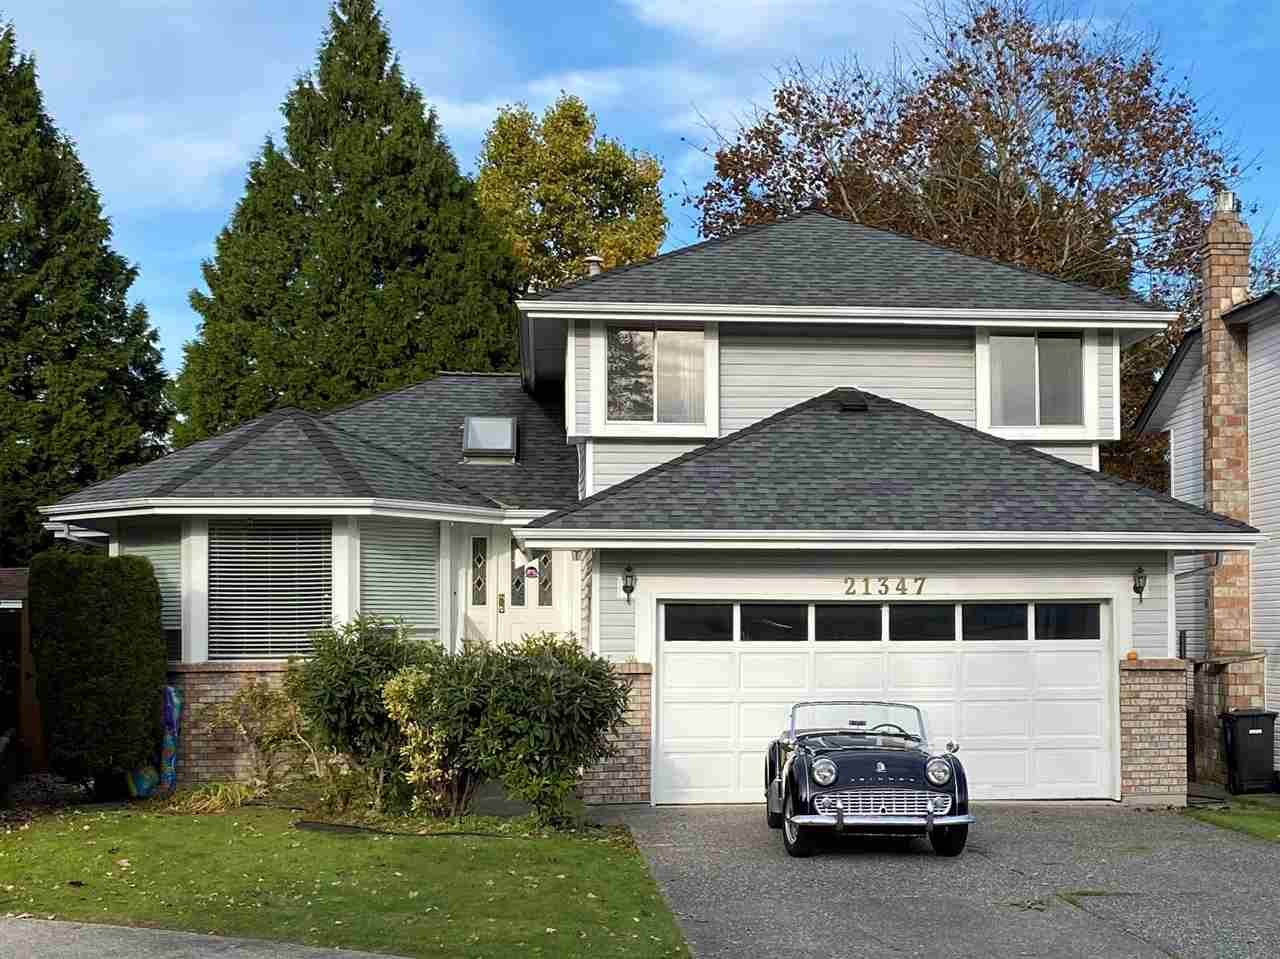 Main Photo: 21347 87 PLACE in Langley: Walnut Grove House for sale : MLS®# R2514473